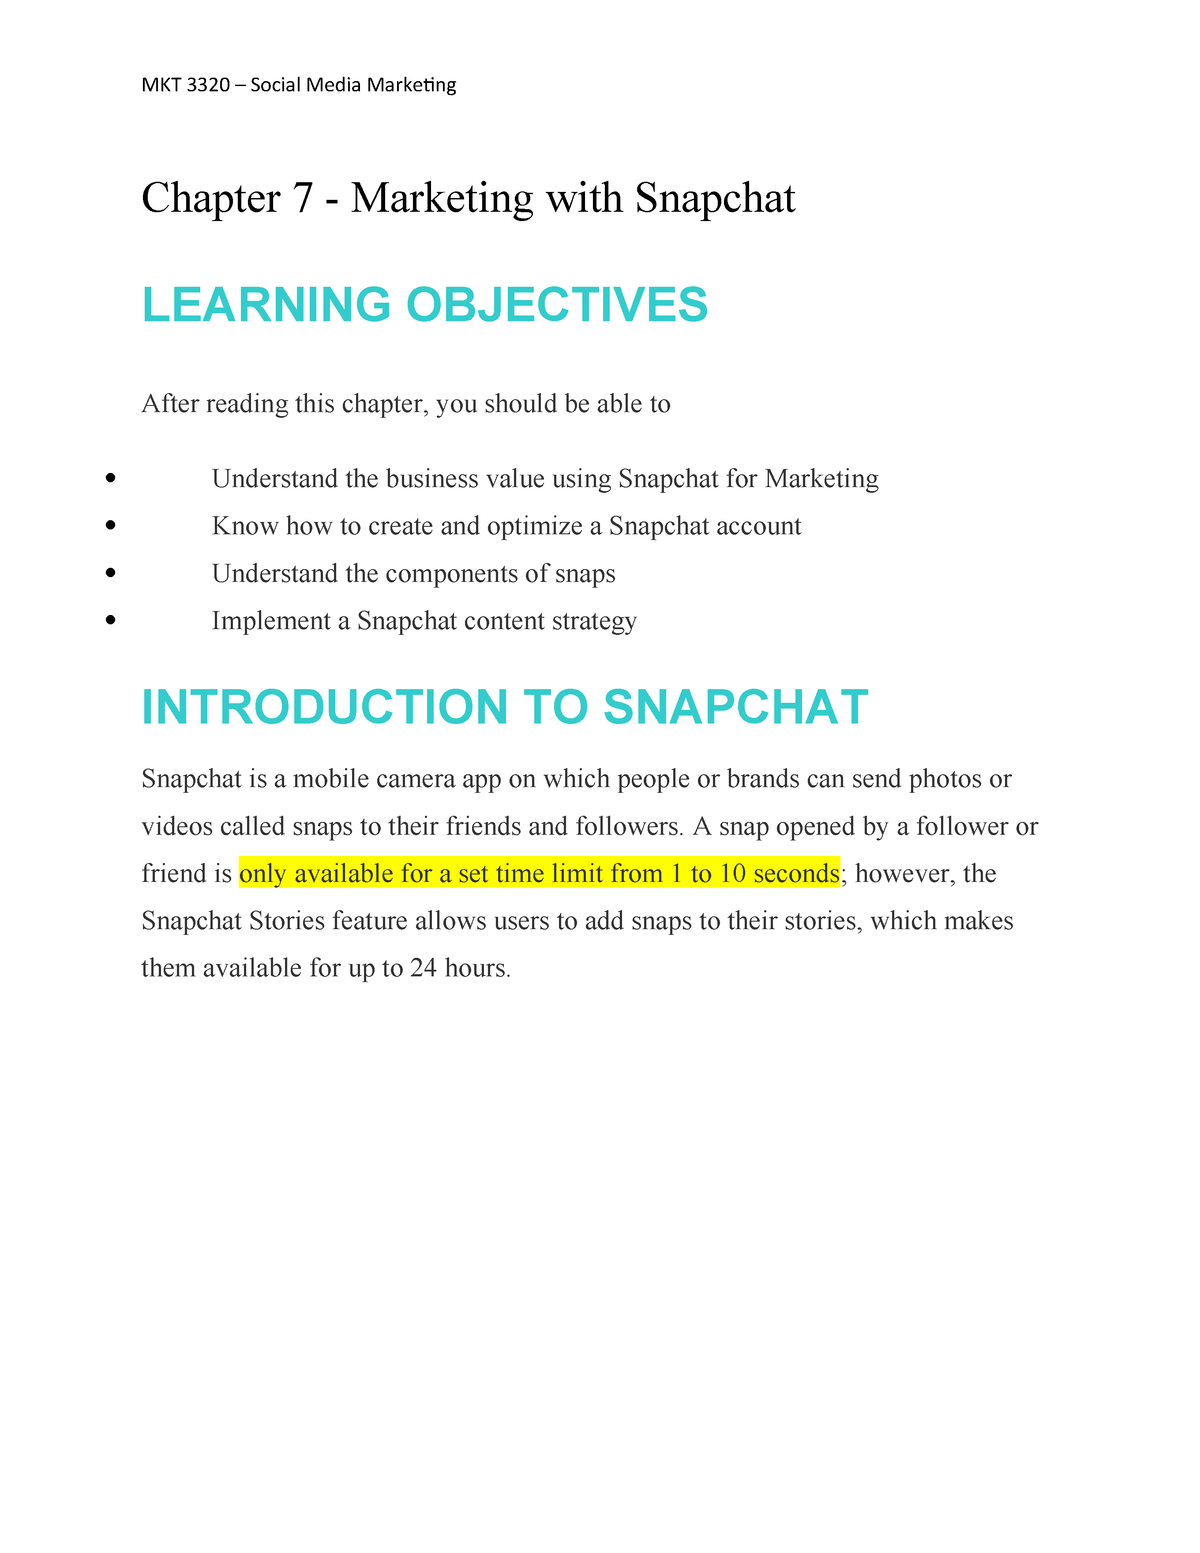 Chapter 7 - Marketing with Snapchat - MKT 3320 : Social